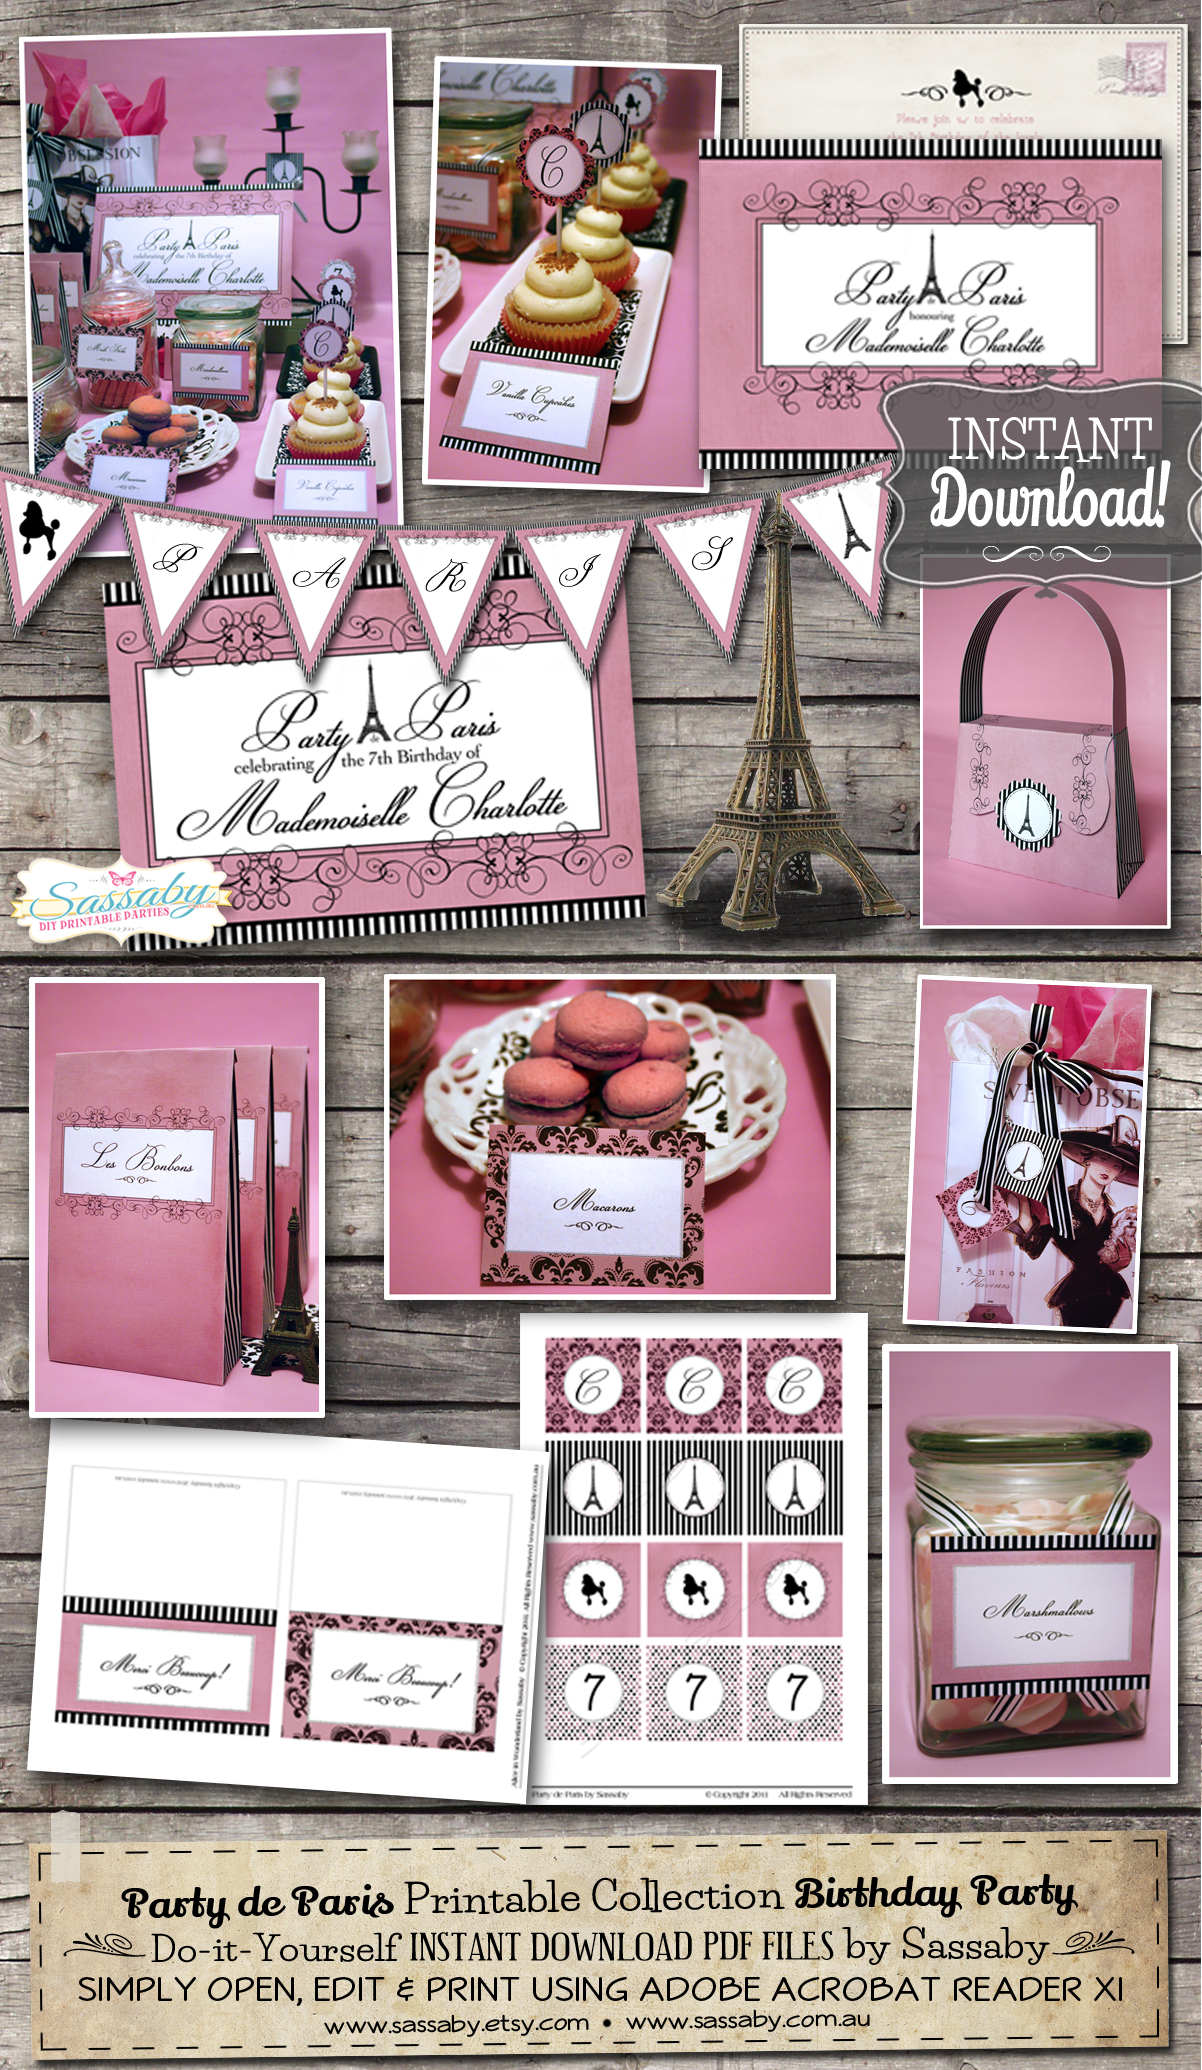 Paris de party printable collection - Sassaby Parties